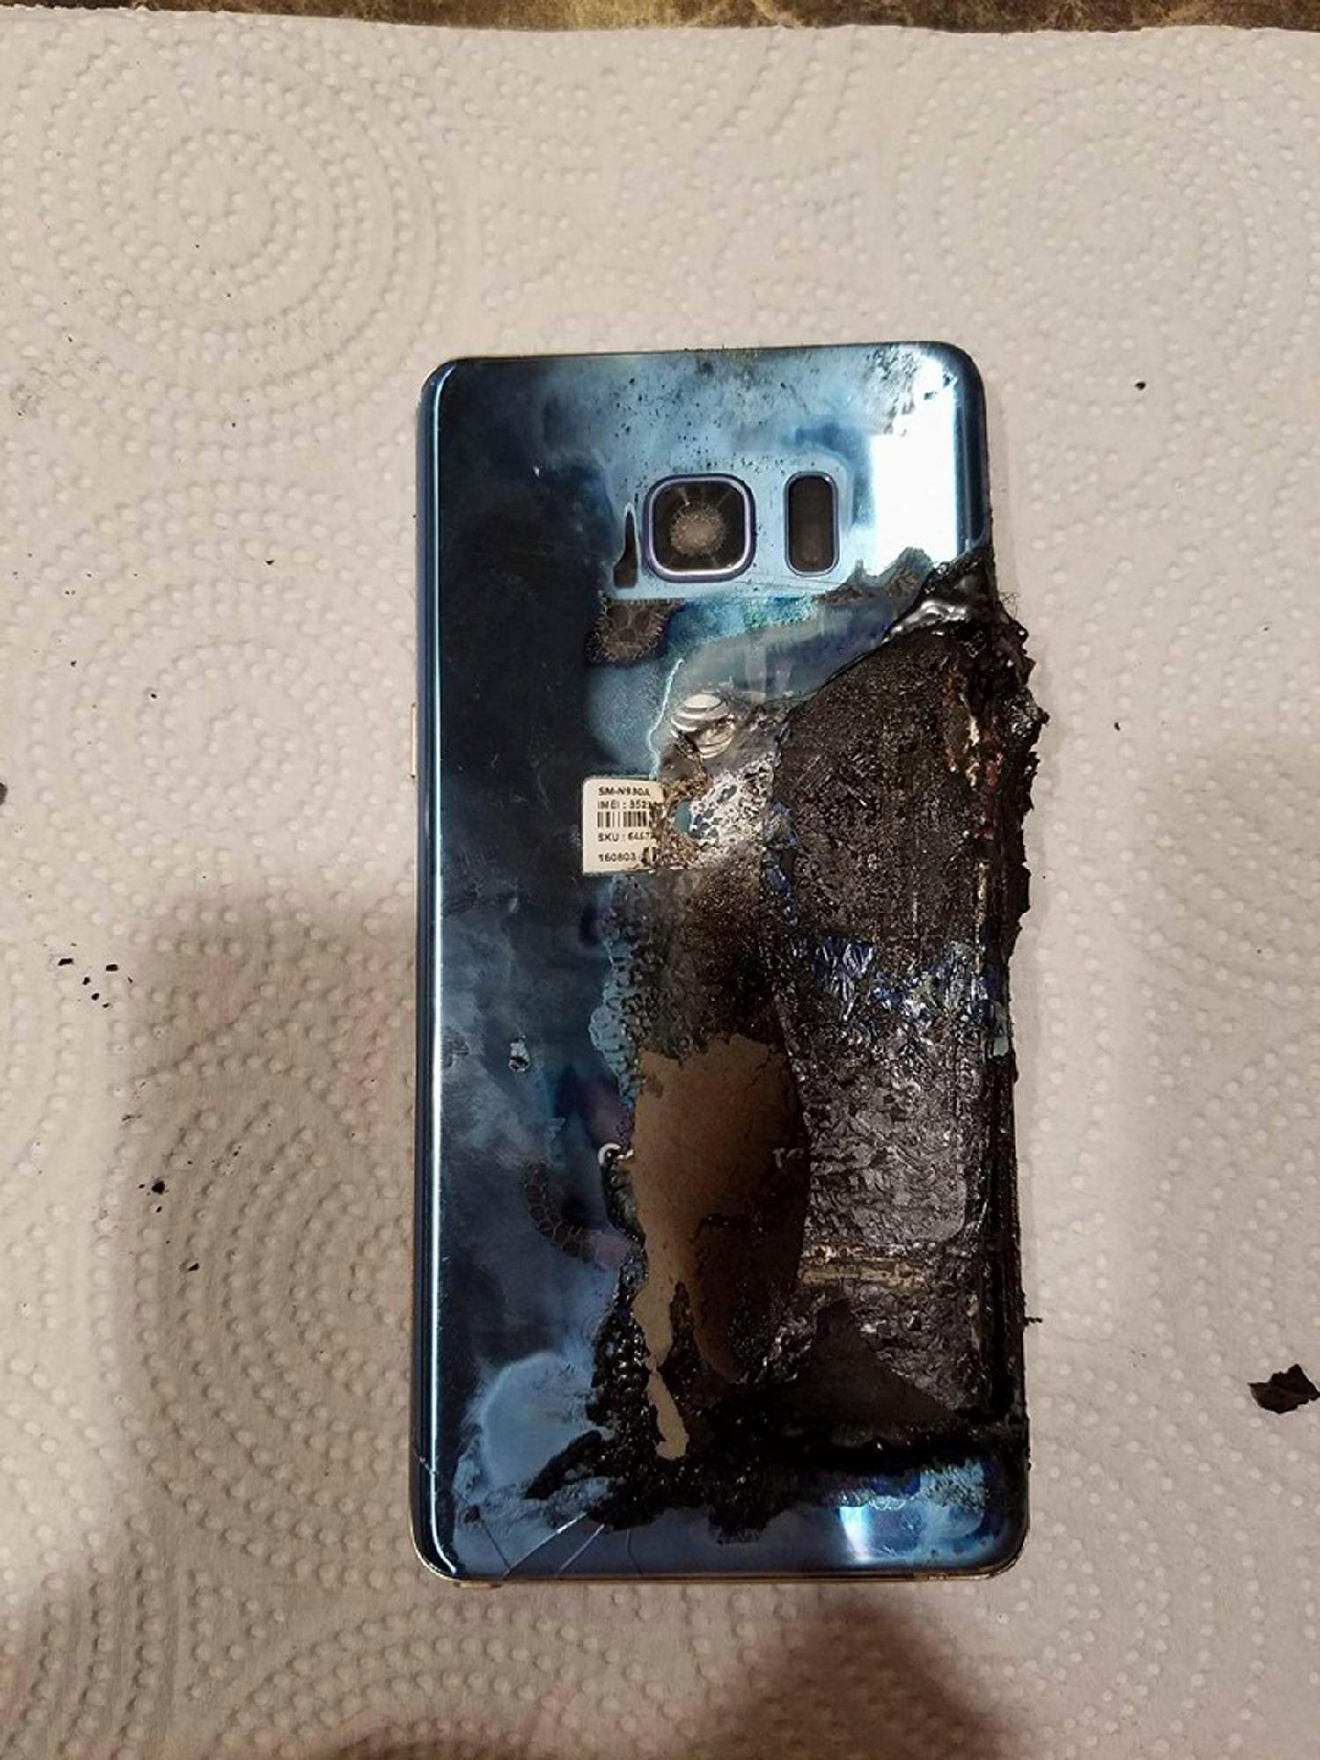 This Sept. 8, 2016, photo, shows a damaged Samsung Galaxy Note 7, in Marion, Ill., belonging to Joni Gantz Barwick, who was woken up at 3 a.m. by smoke and sparks from her Galaxy Note 7. (Joni Gantz Barwick via AP)